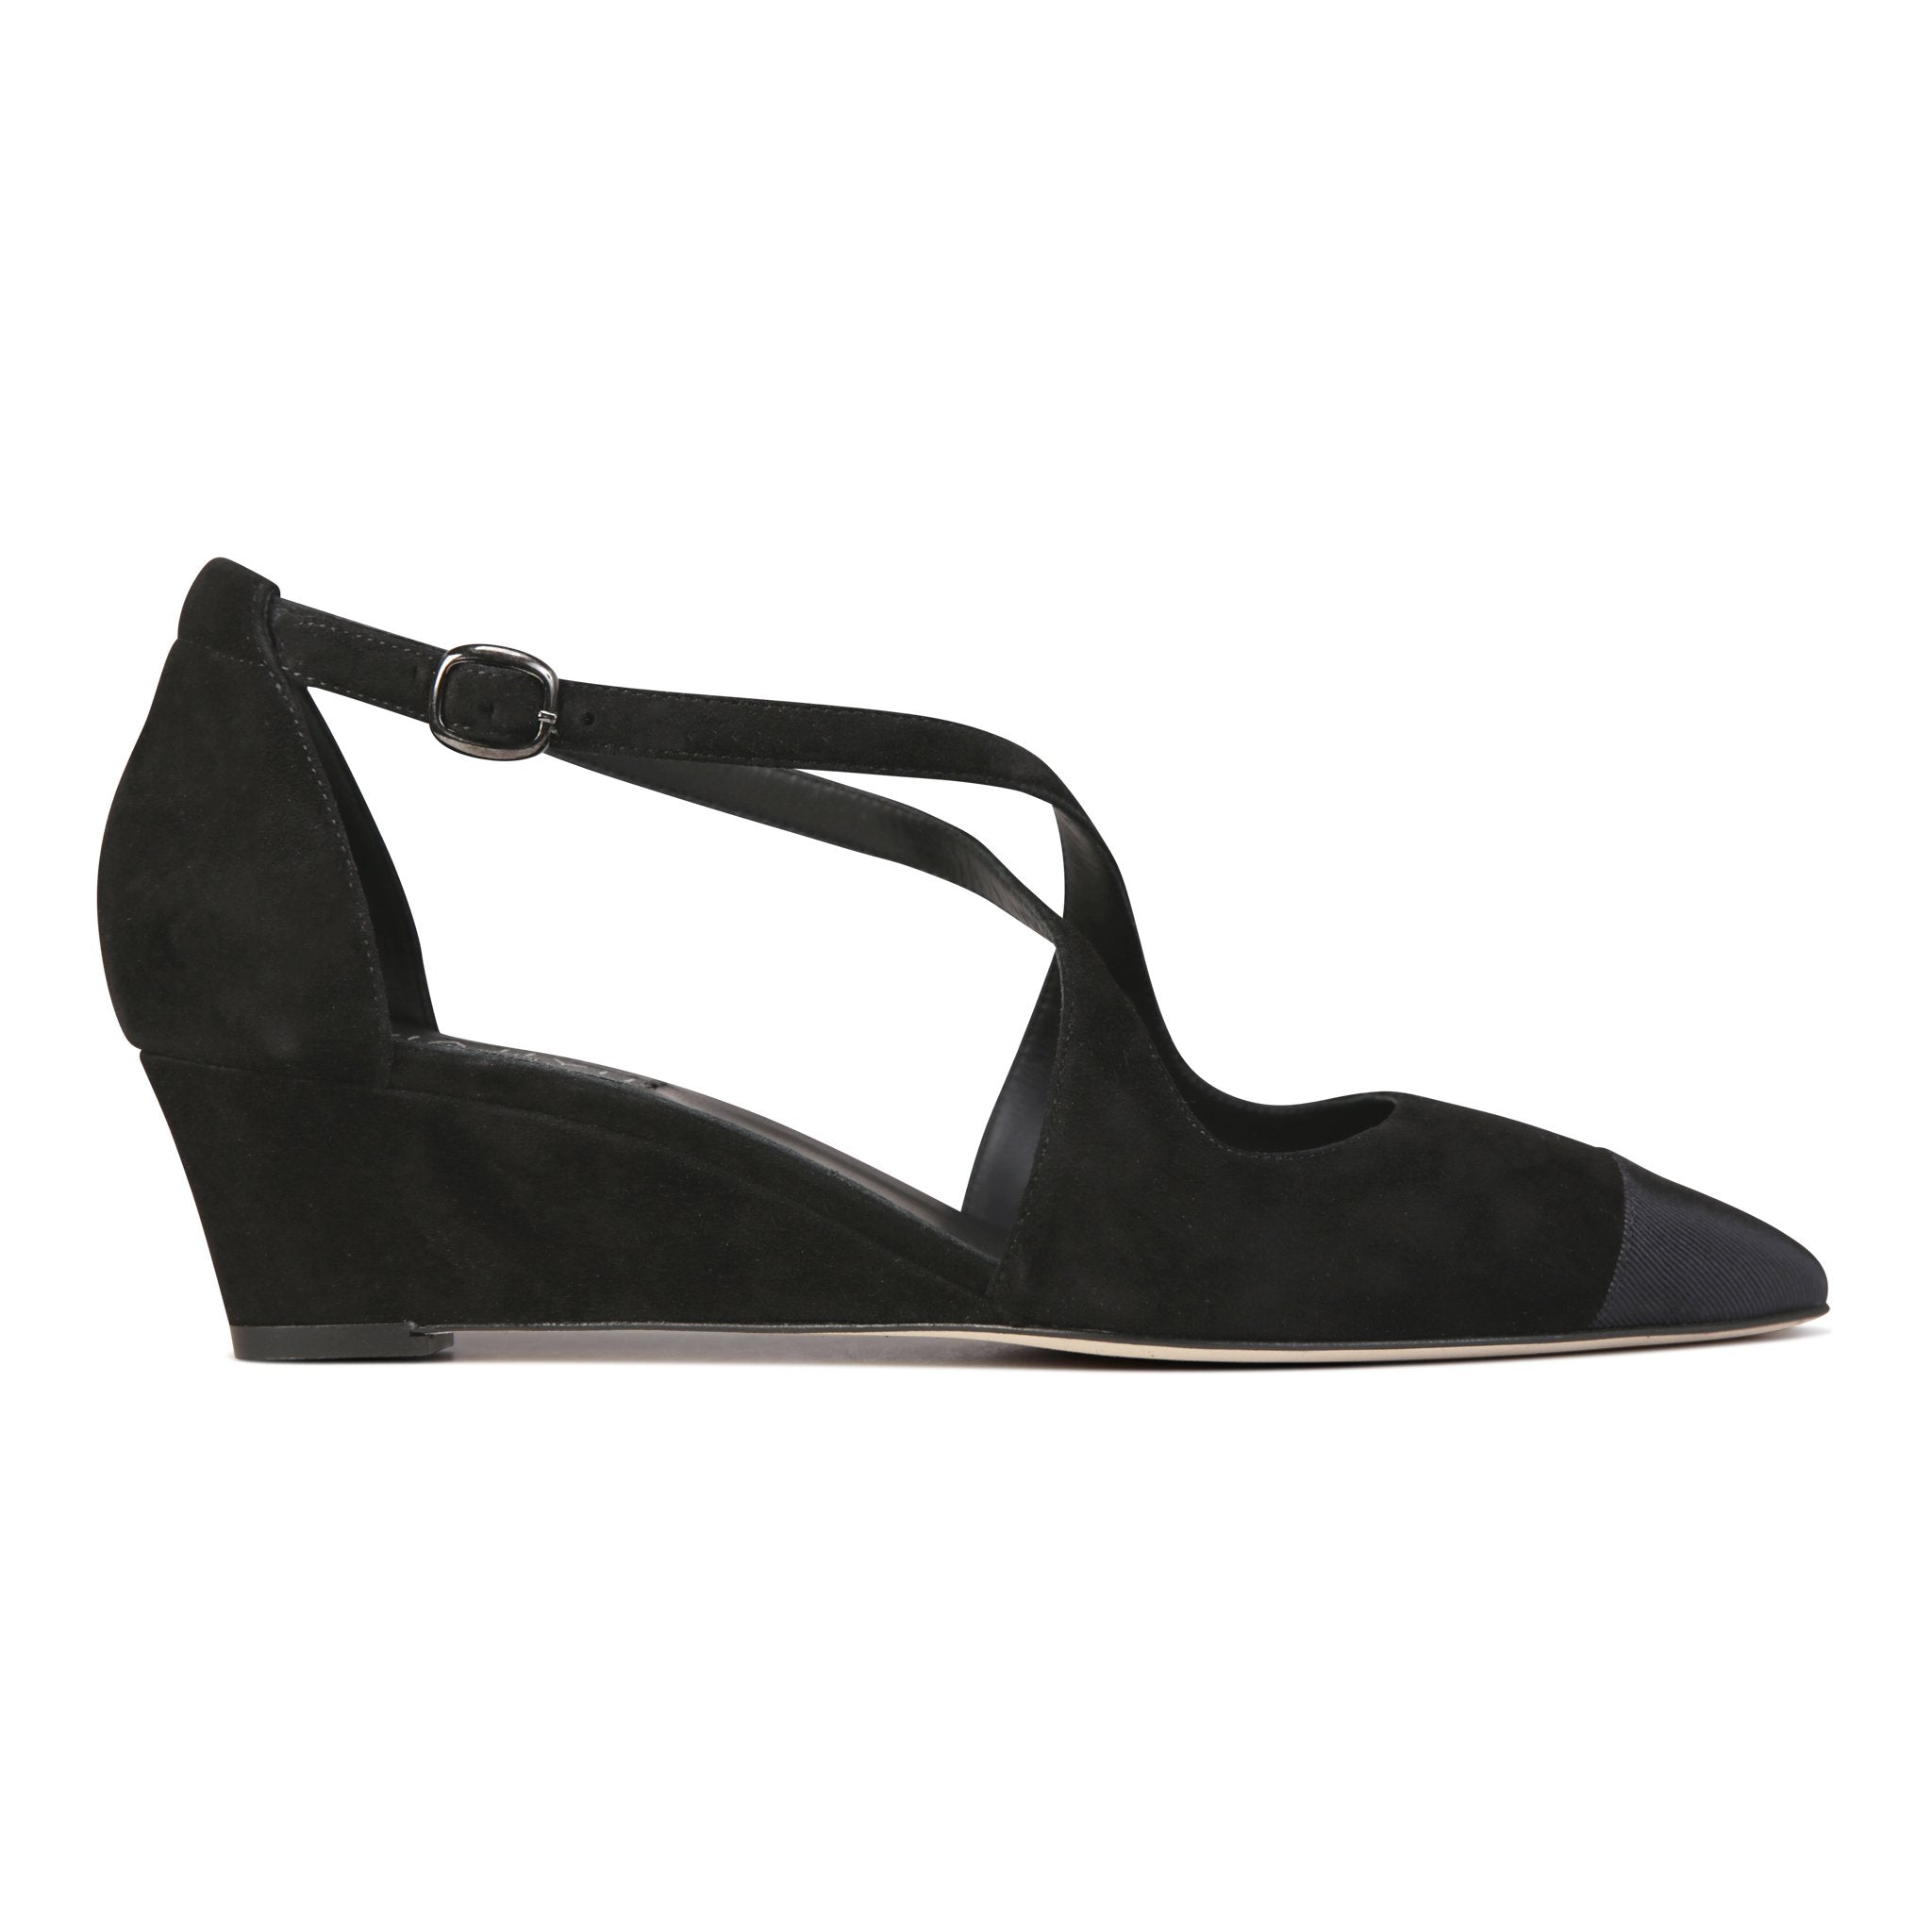 AREZZO - Velukid Nero + Grosgrain Toe, VIAJIYU - Women's Hand Made Sustainable Luxury Shoes. Made in Italy. Made to Order.